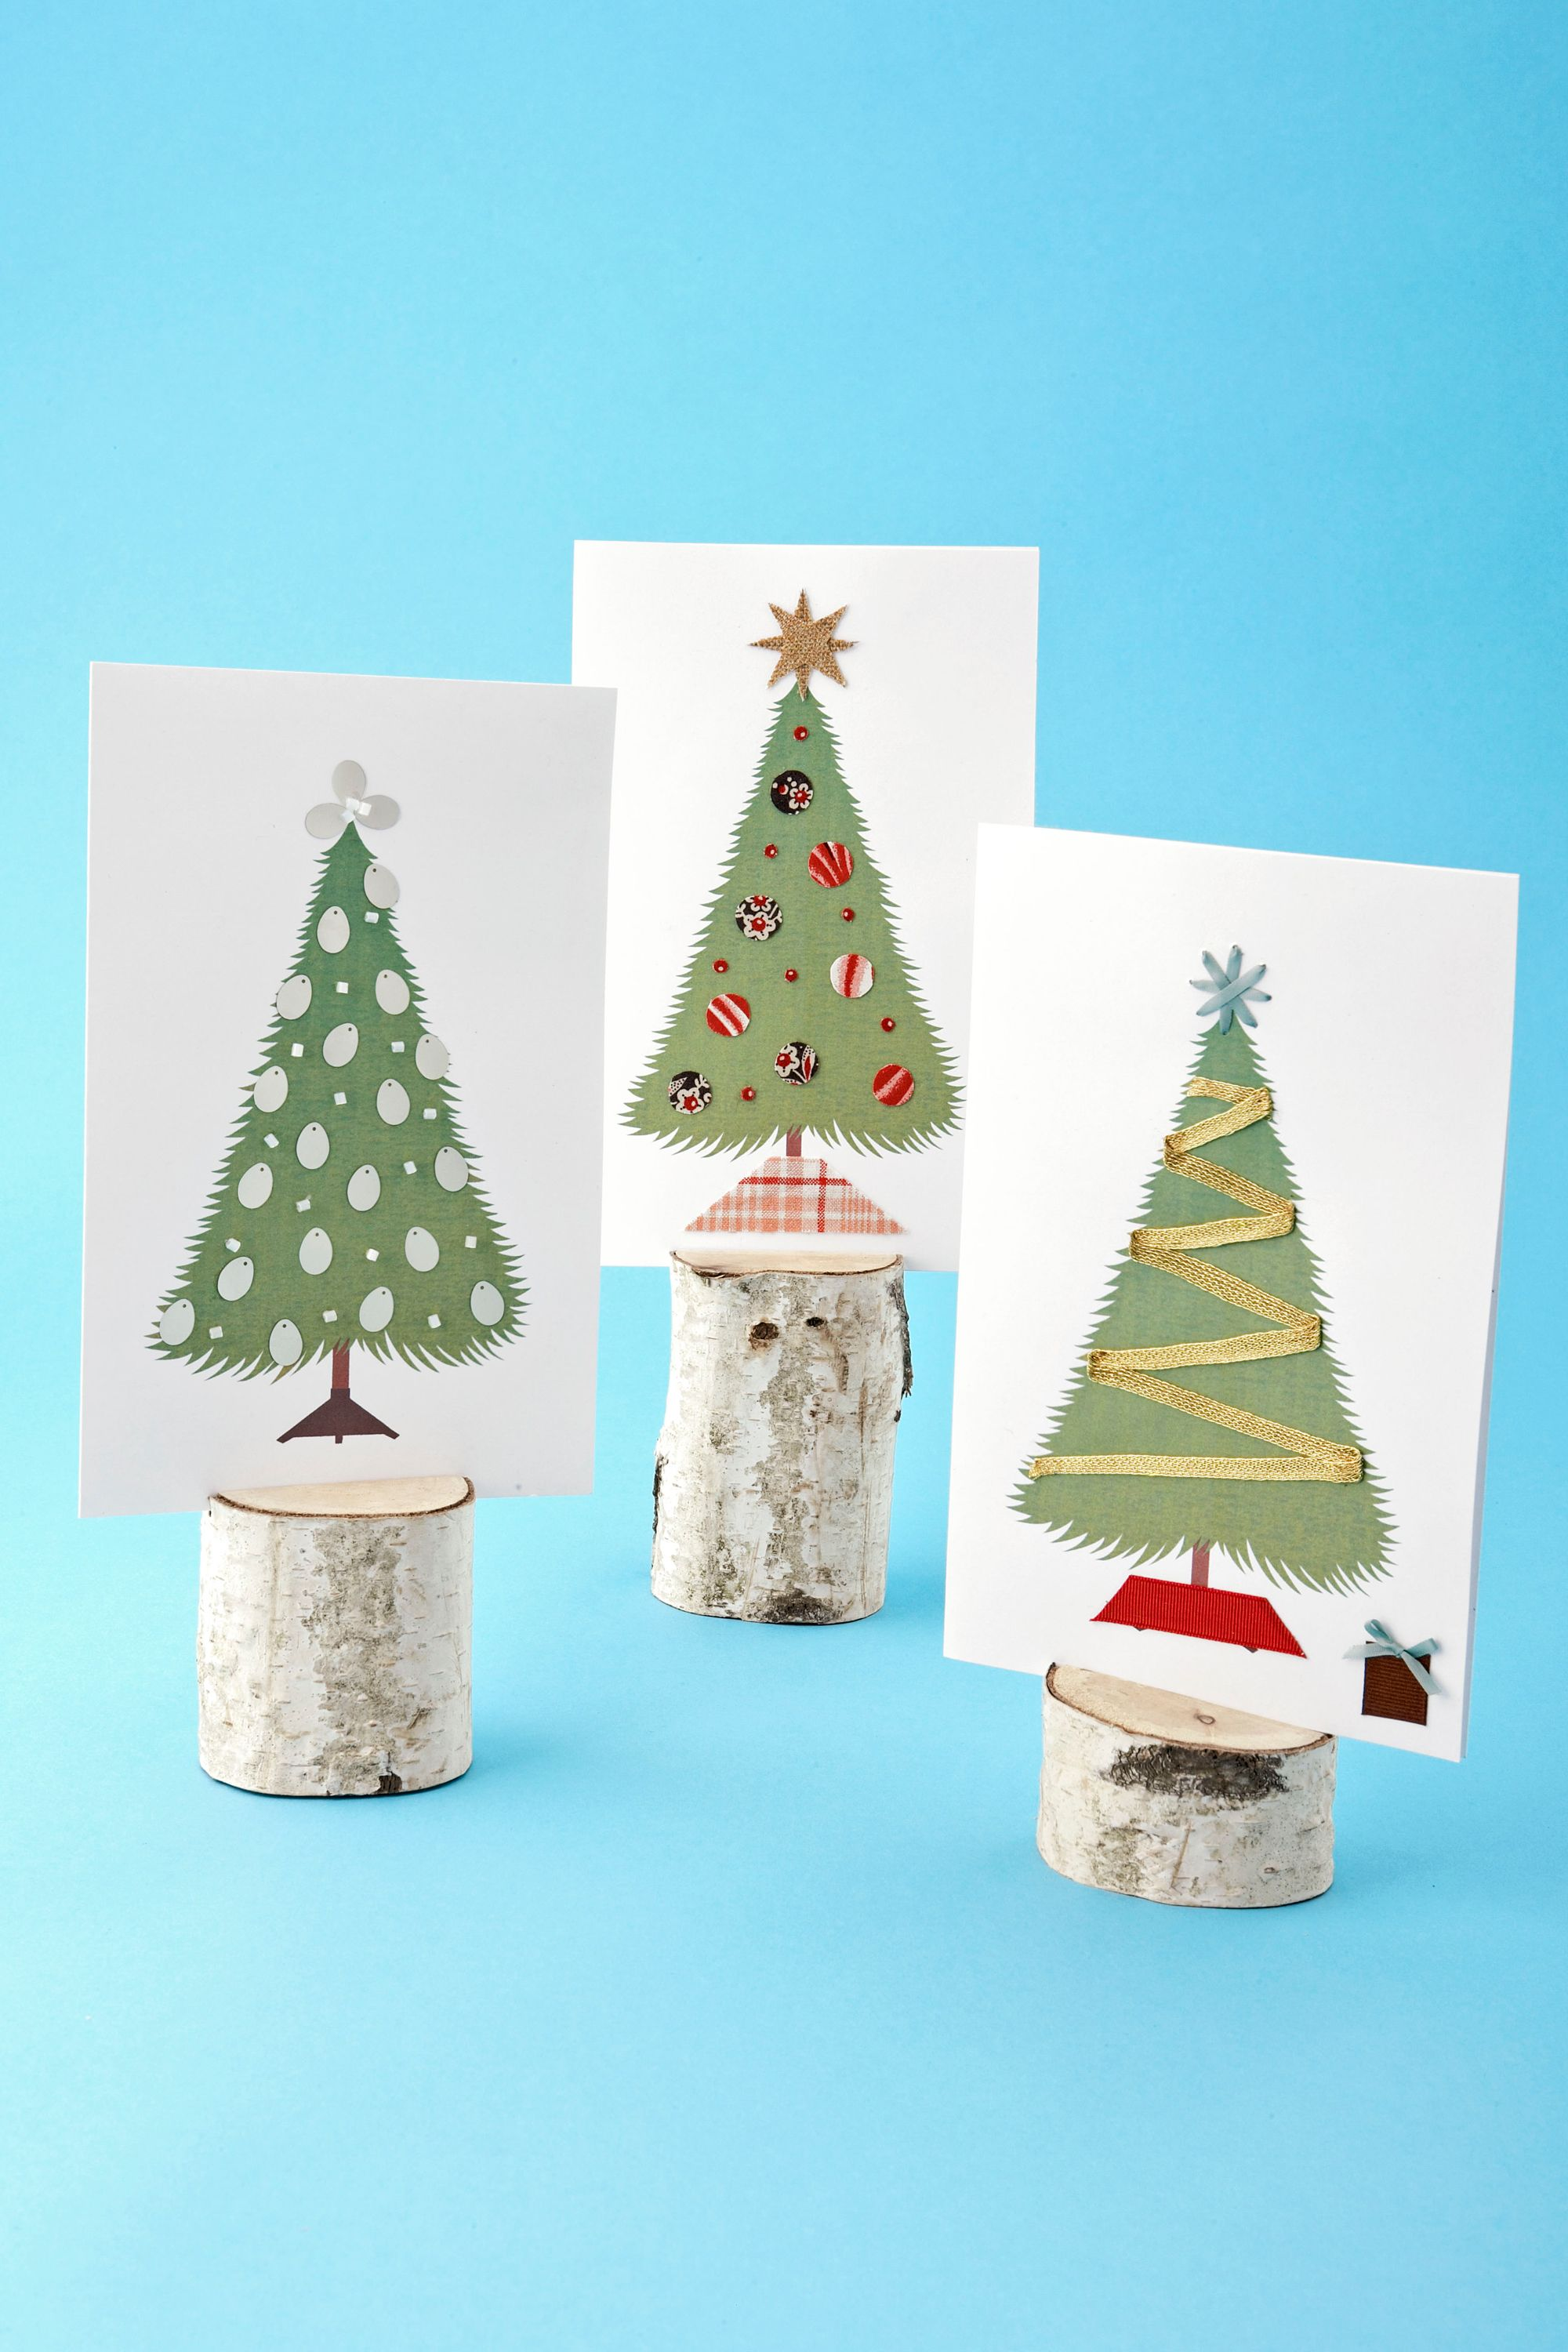 45 Easy Christmas Crafts for Adults to Make - DIY Ideas for Holiday ...